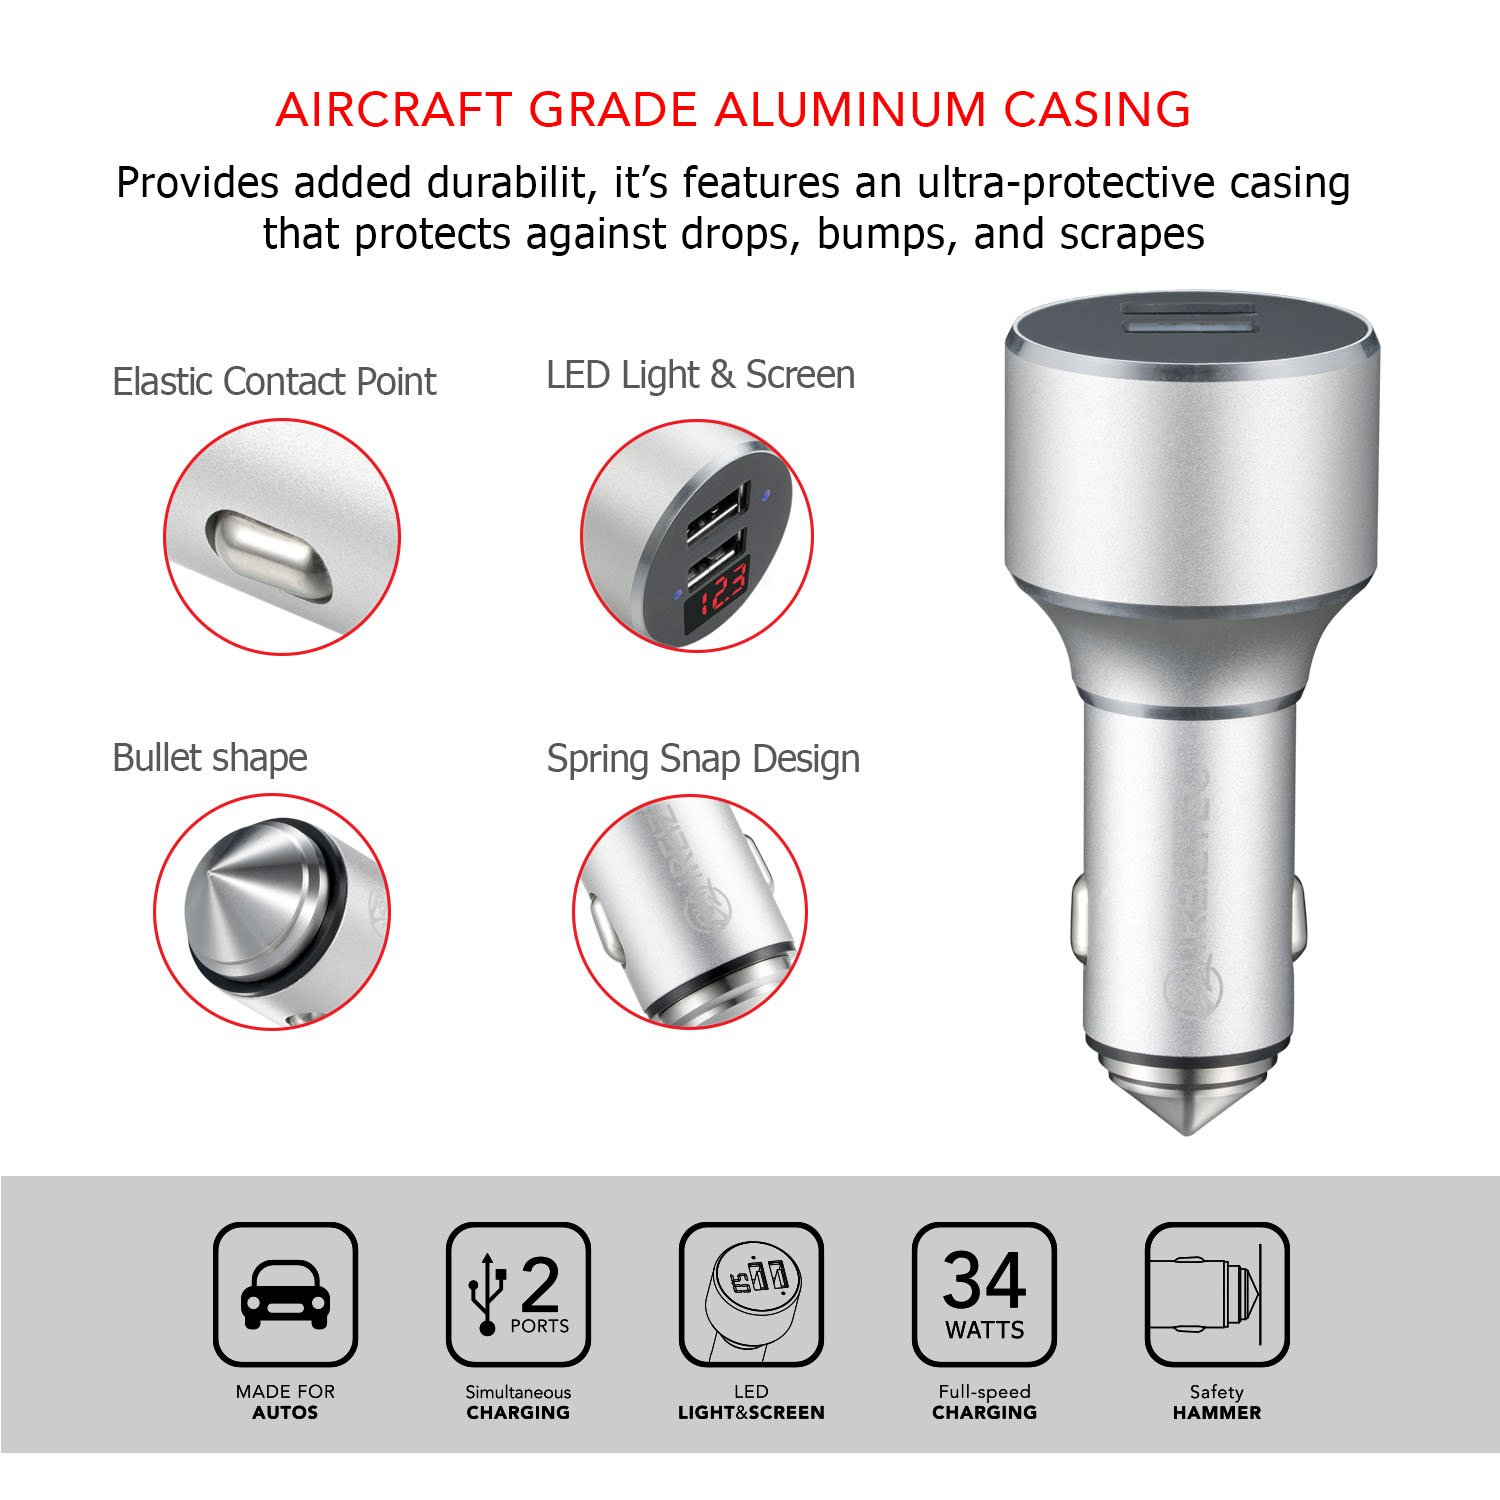 USB Car Charger, Cigarette Lighter Adapter with Safety Hammer, 34W QC 3.0 & 5V/2.1A Ports for fast charge iPhone X 8 7 6S 6 Plus, iPad Pro Air, Galaxy S9 S8 S7 S6 Edge Plus Note 8, LG G6 V10, HTC